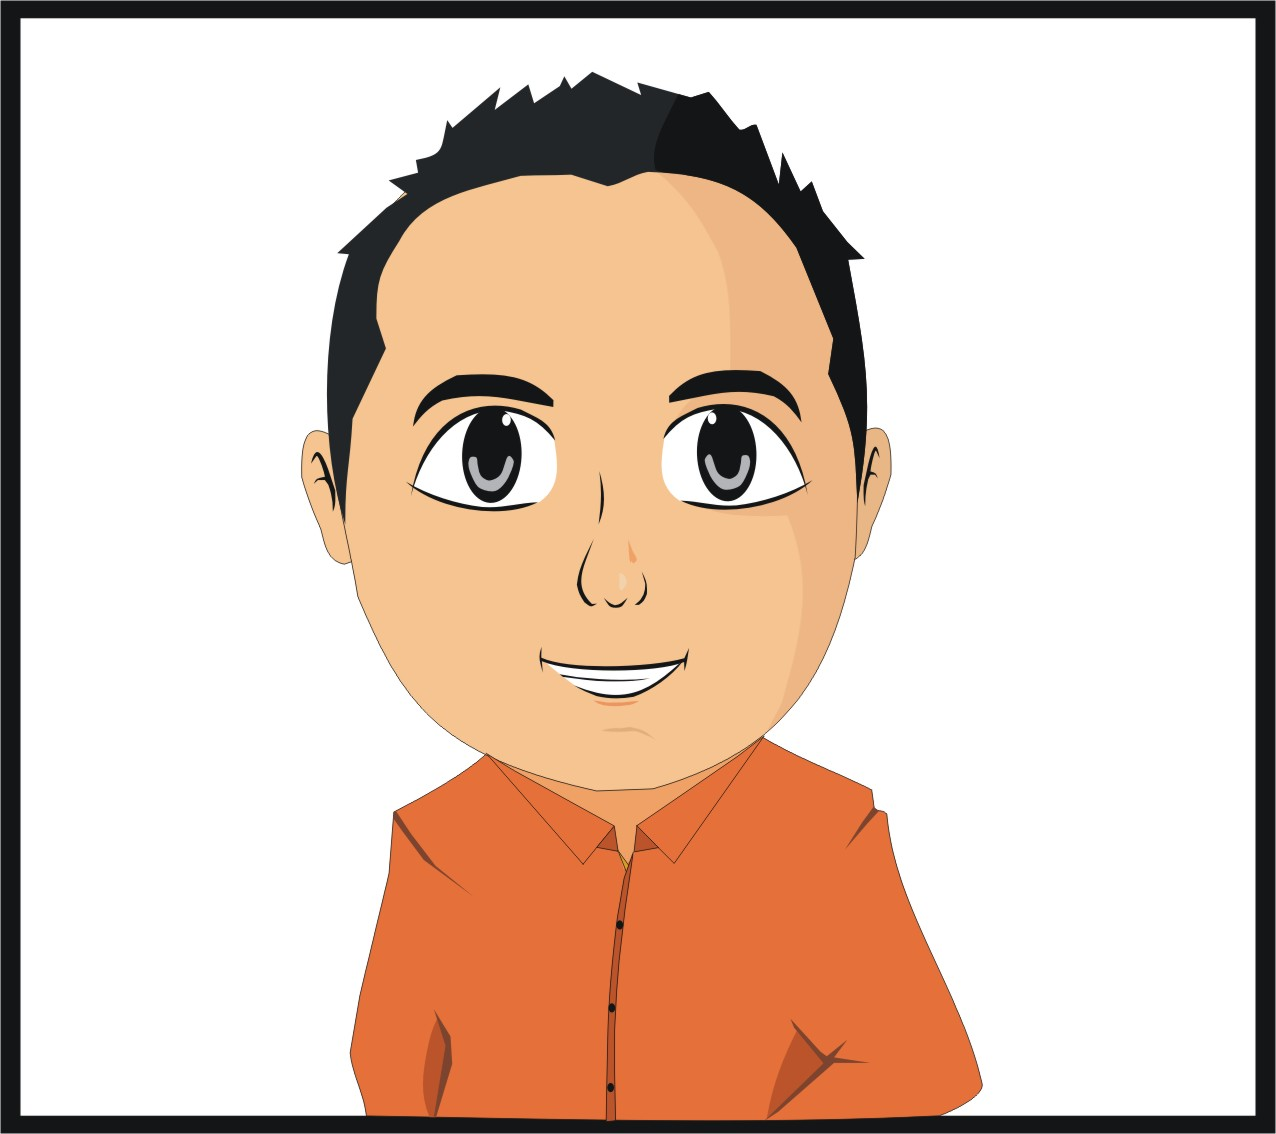 Pictures From Avatar: Create Cute Avatar Vector Of You In My Style For $5